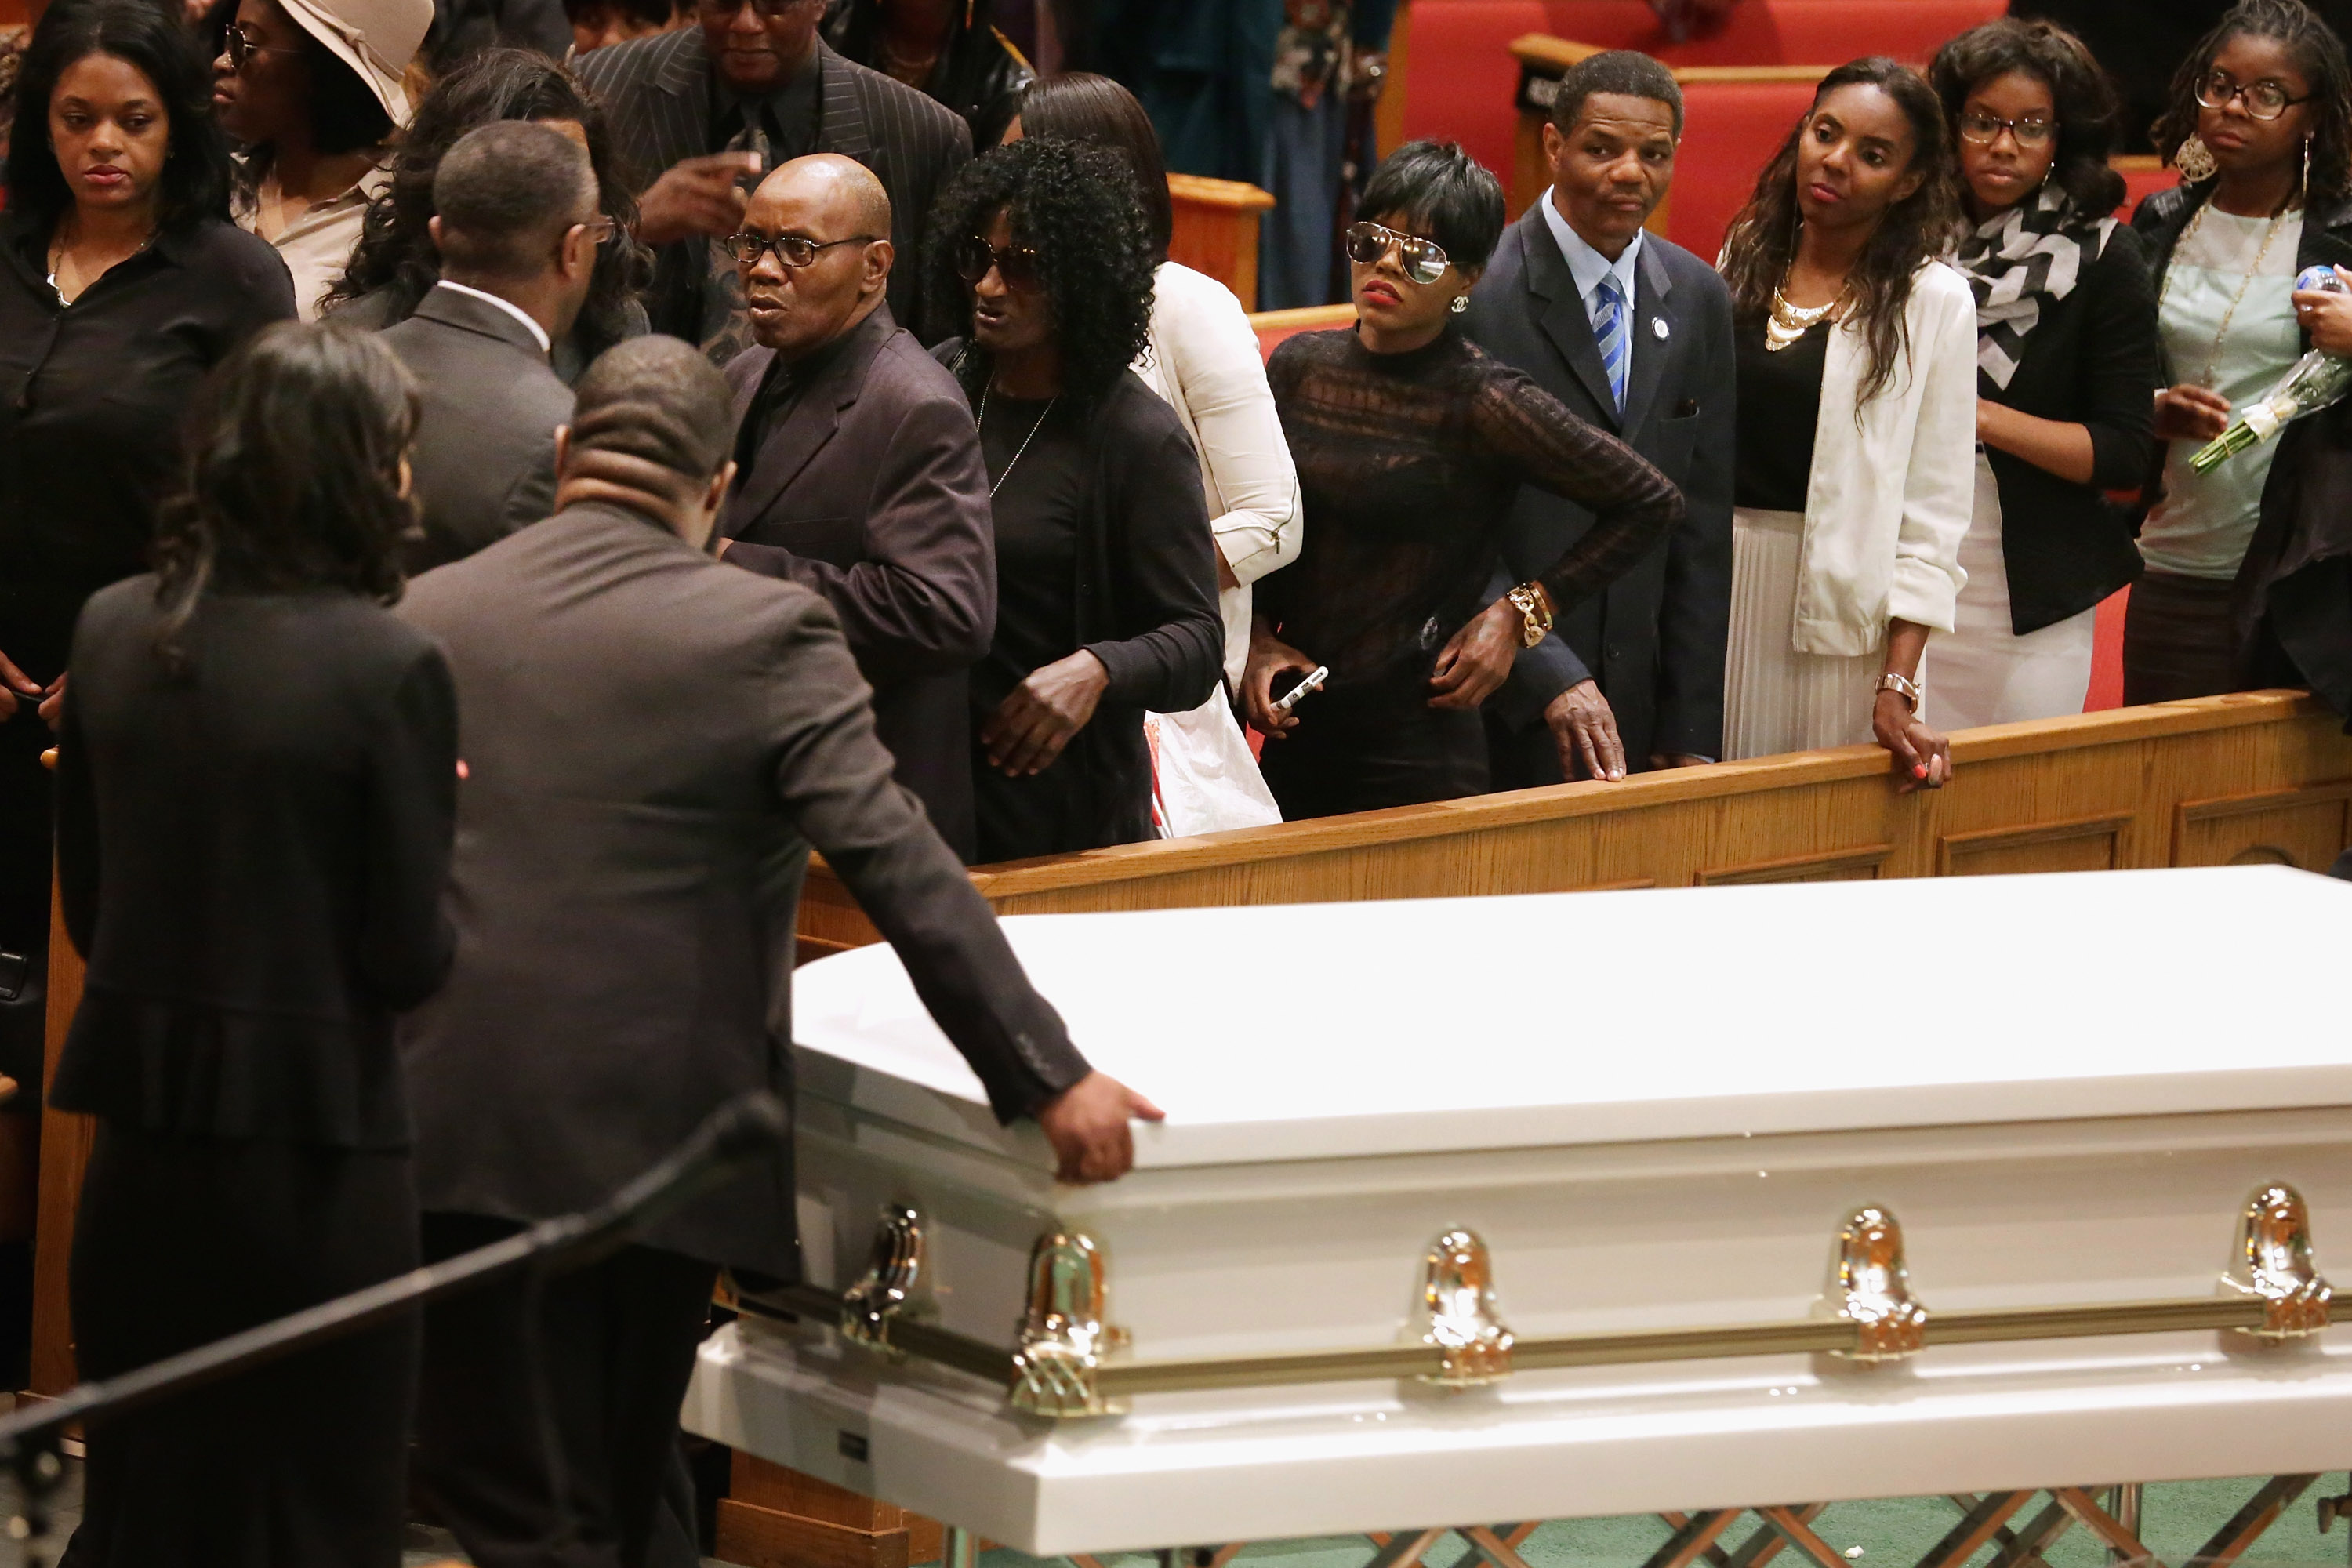 Fredericka Gray, in sunglasses, at her brother's funeral. (Getty)